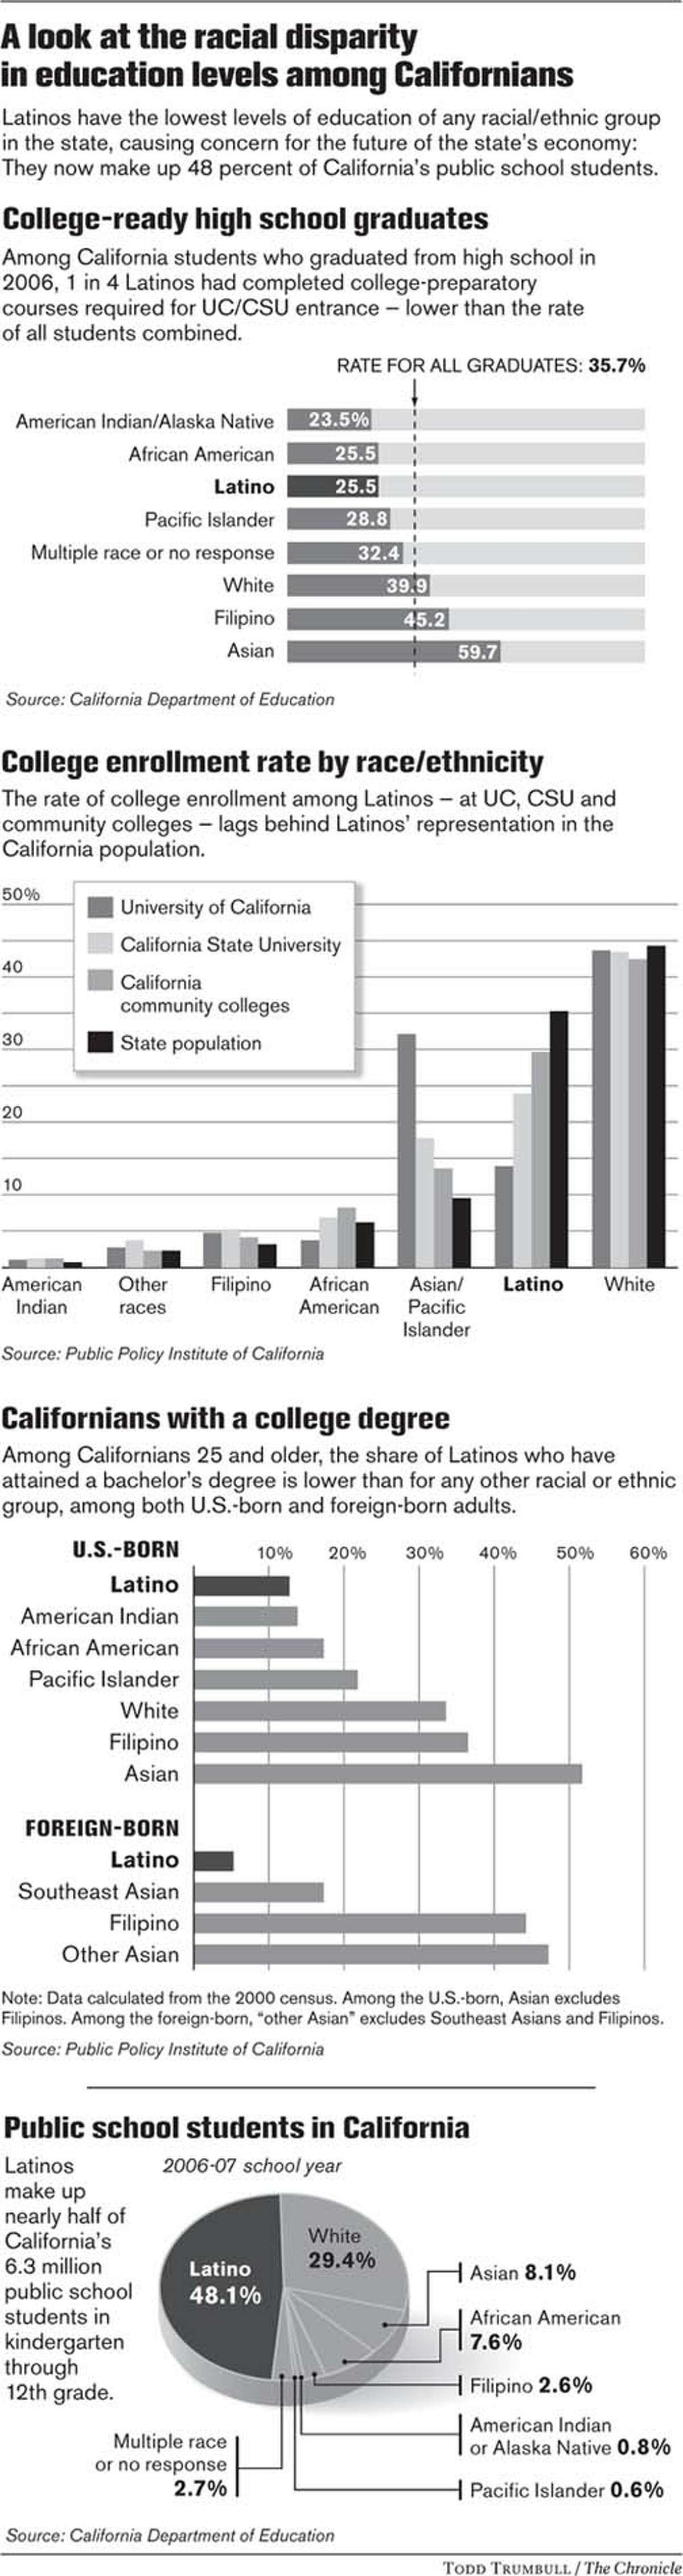 A look at the racial disparity in education levels among Californians. Chronicle graphic by Todd Trumbull